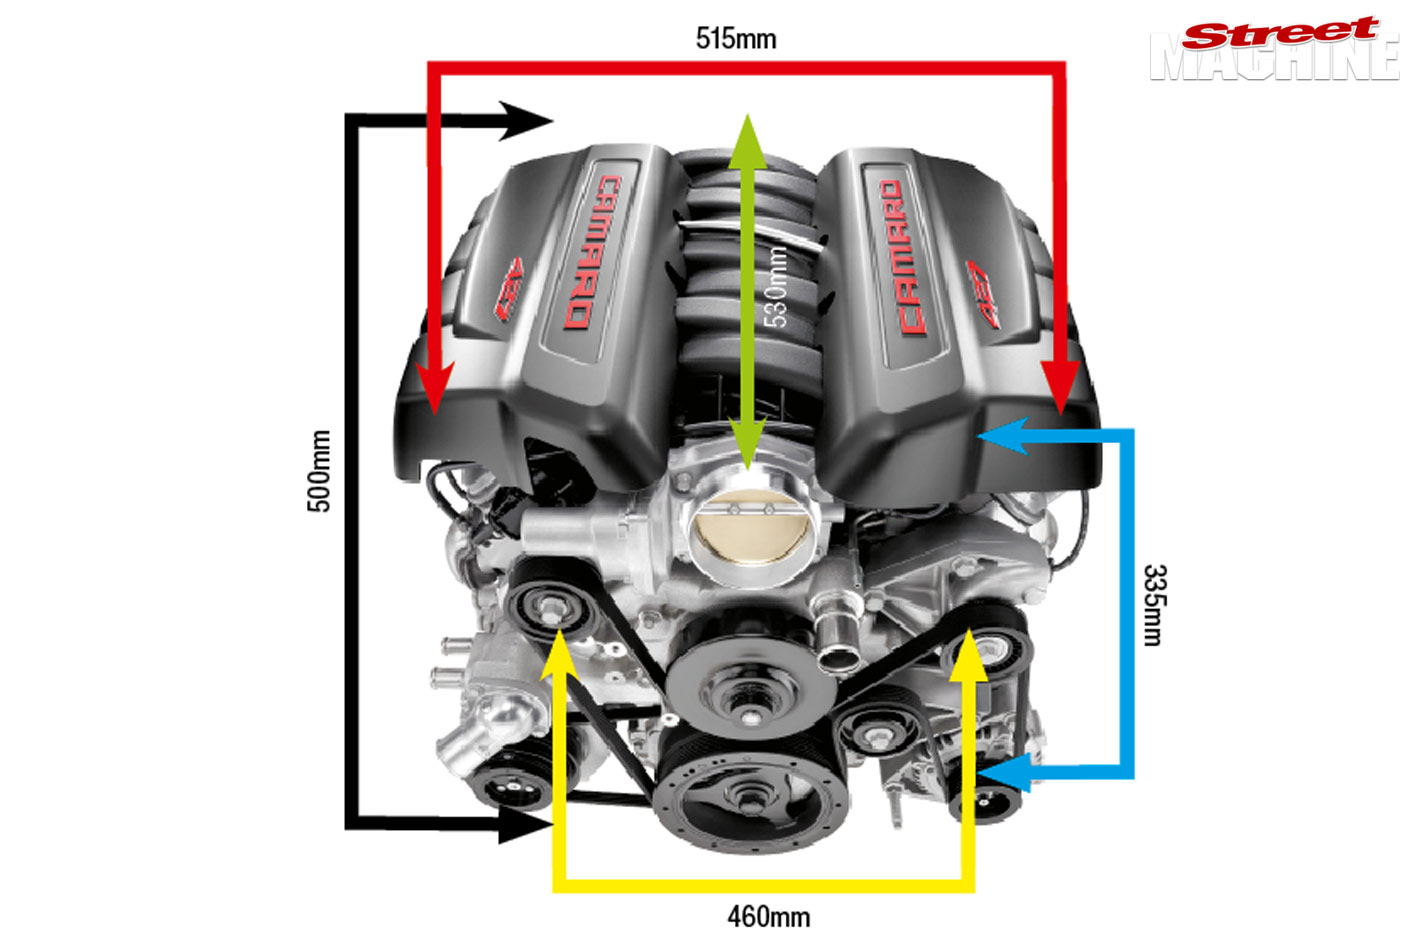 Guide to LS engine swaps